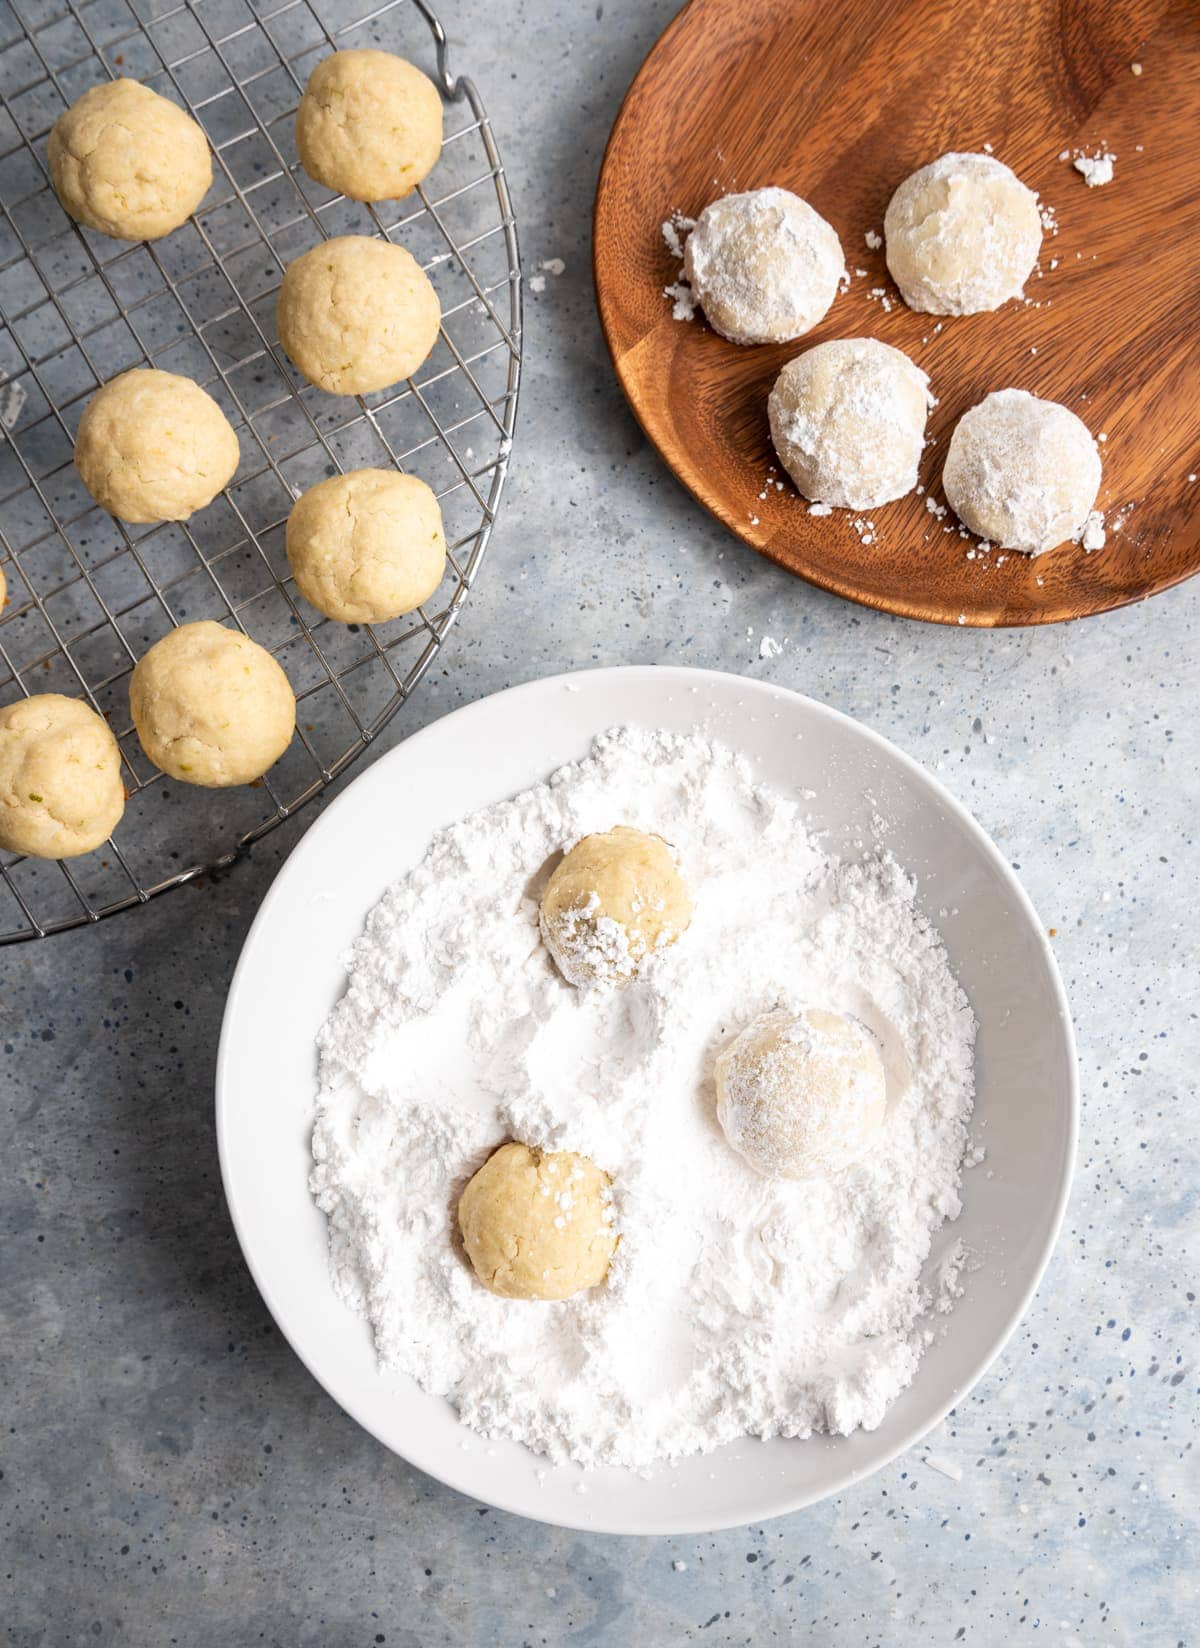 cookies on a wire cooling rack, cookies in a bowl with powdered sugar, cookies covered in powdered sugar on a wooden plate